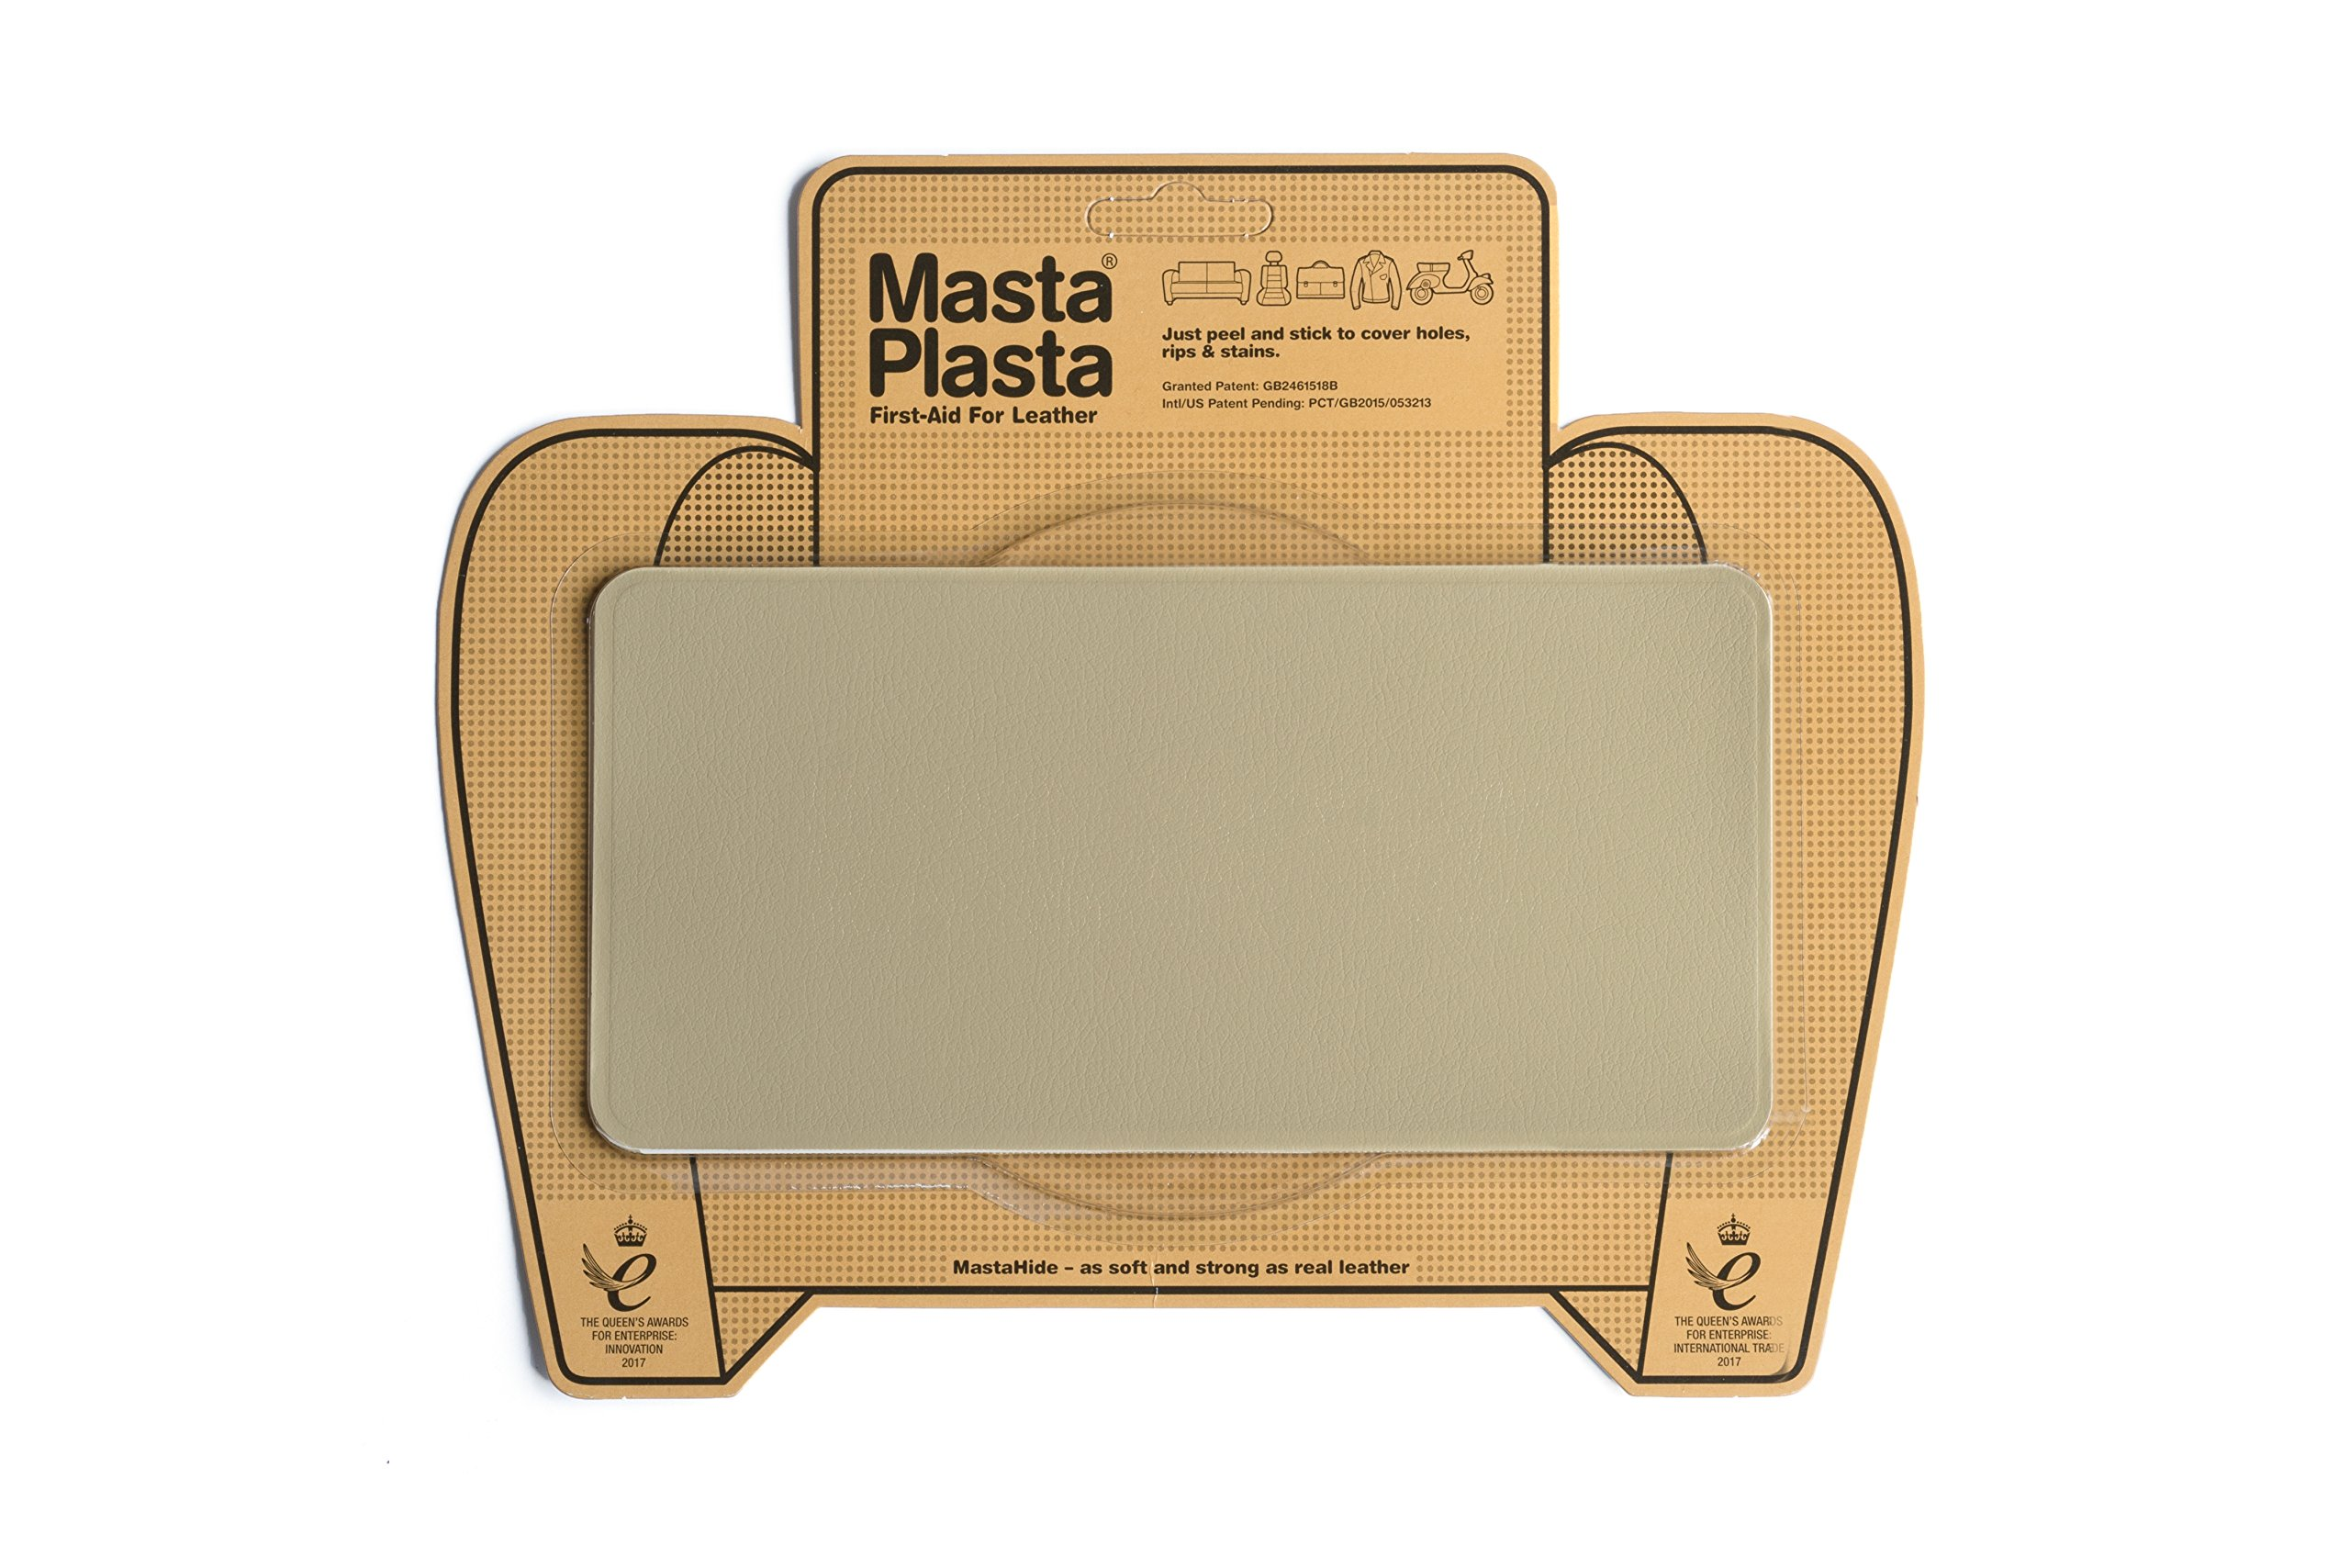 MastaPlasta, Leather Repair Patch, First-Aid for Sofas, Car Seats, Handbags, Jackets, Plain, Beige large Stitch 8''x4''